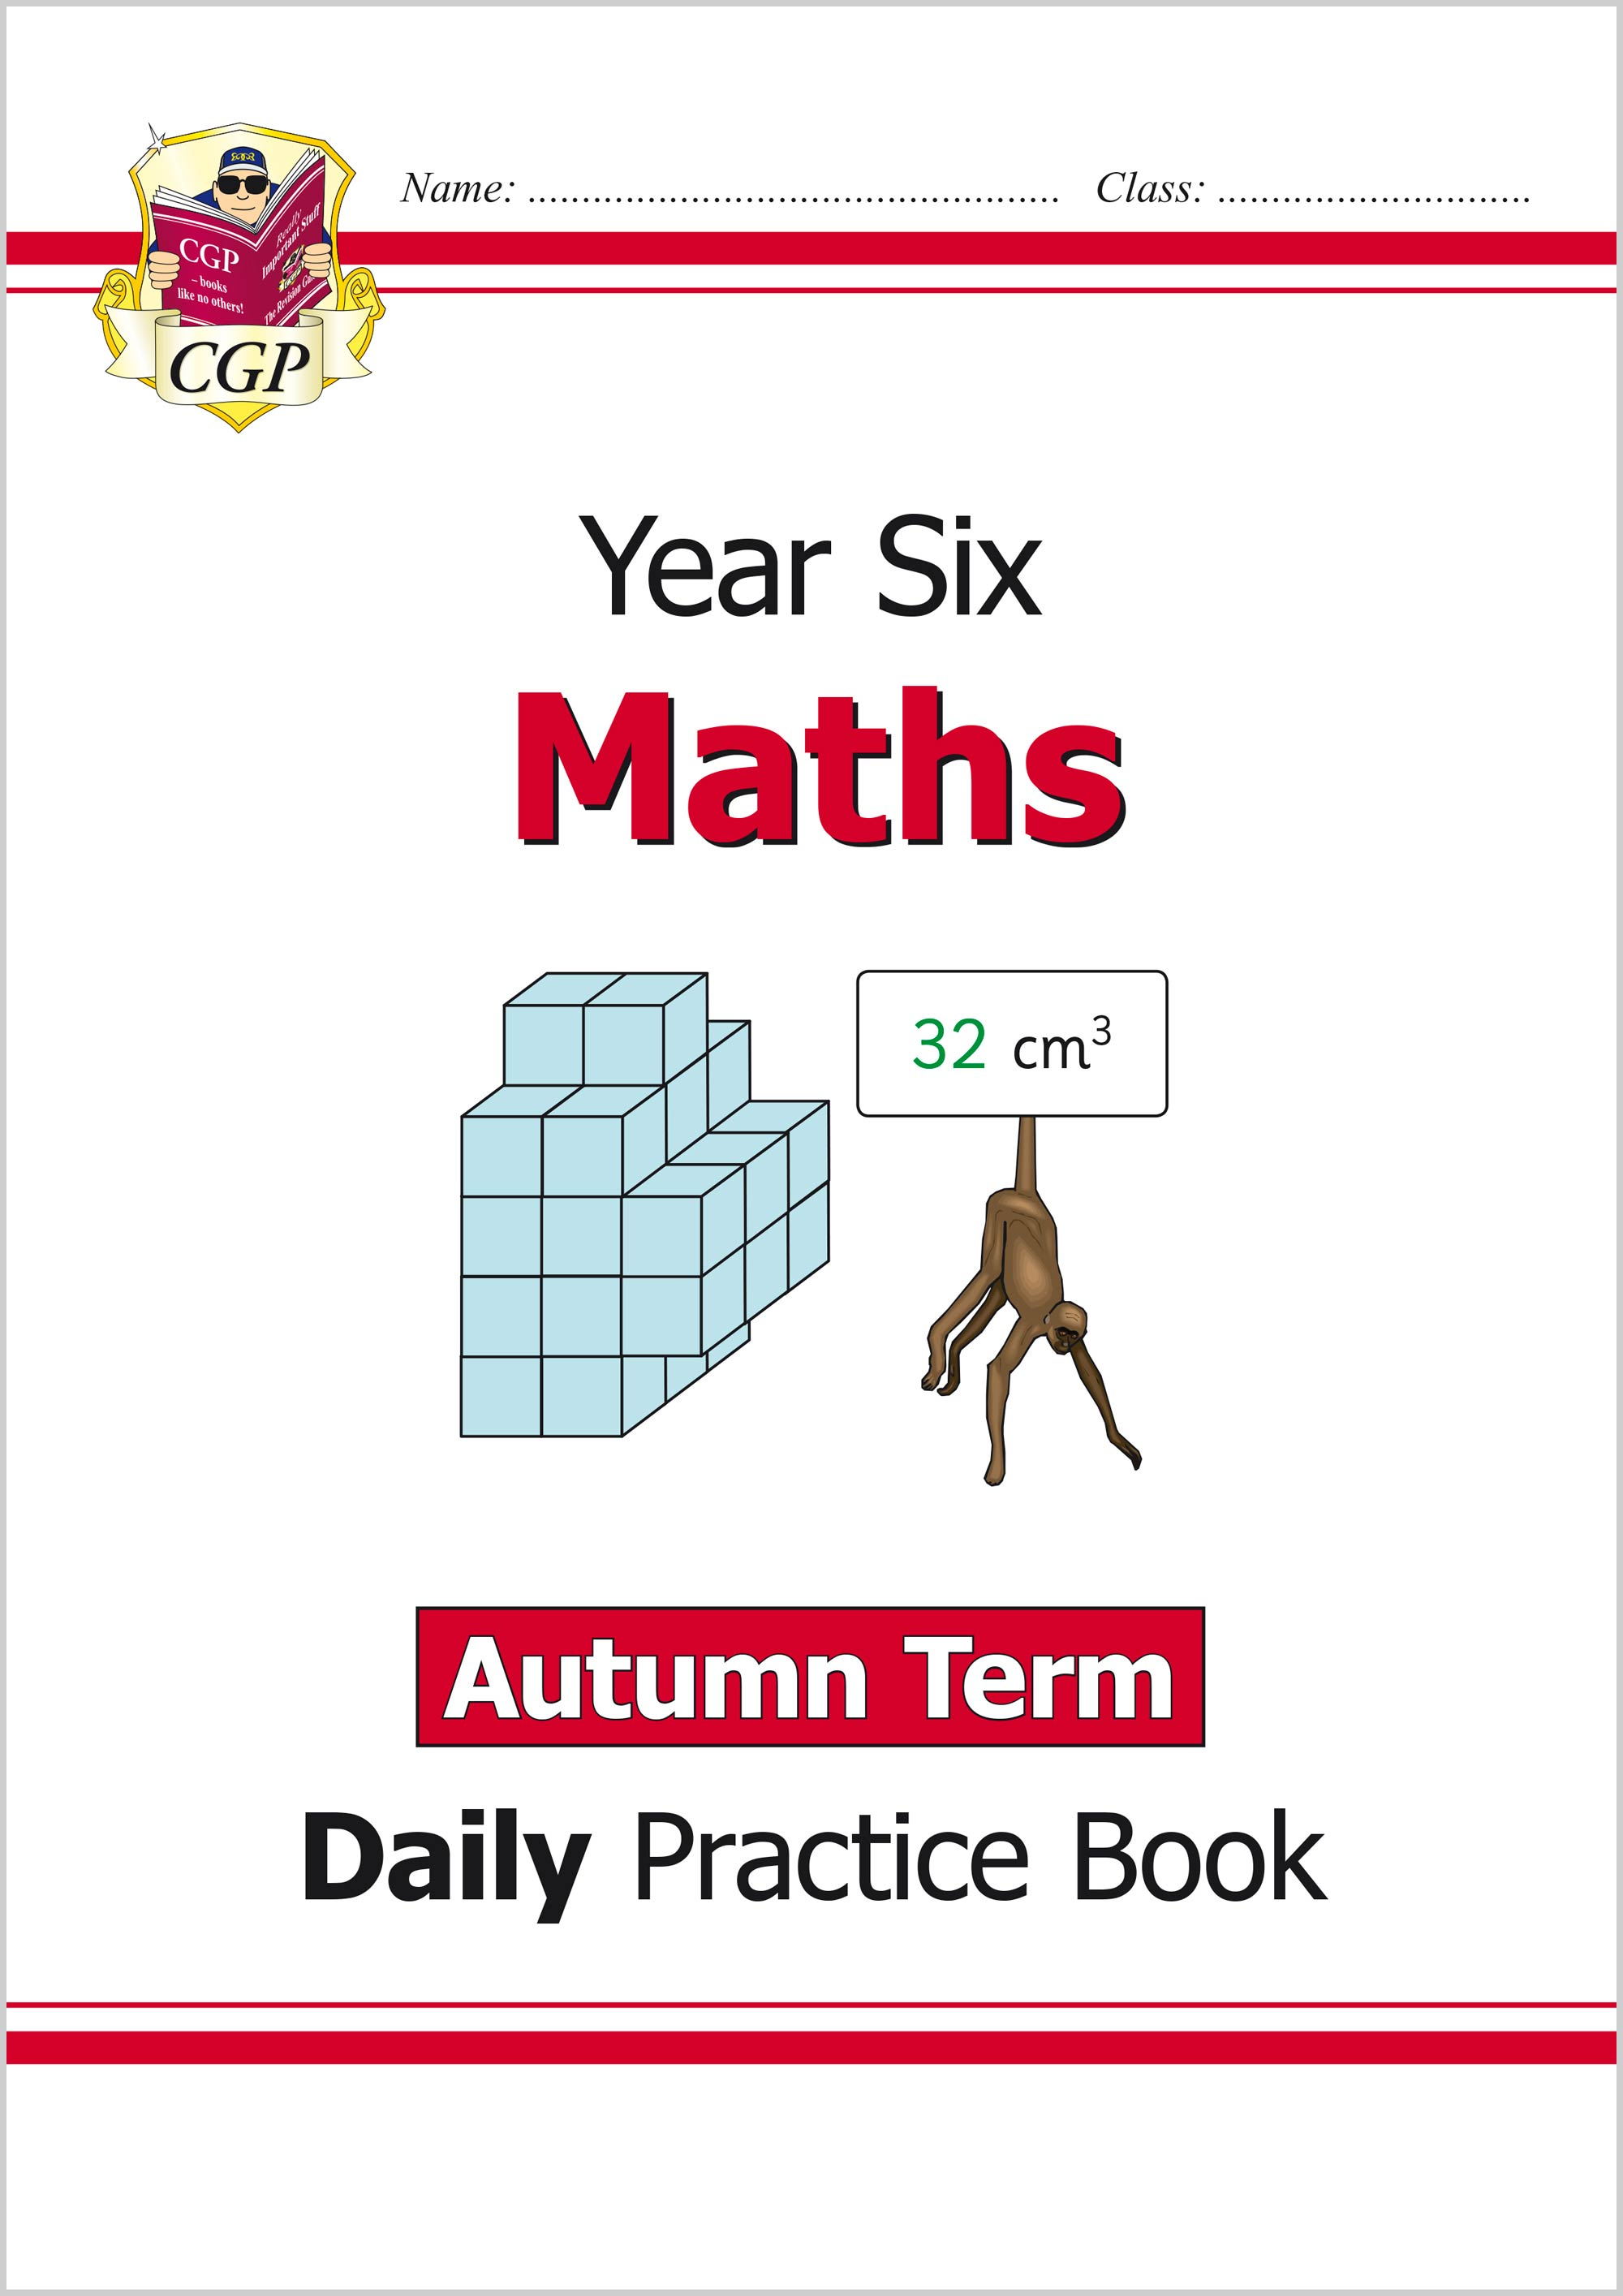 M6WAU21 - New KS2 Maths Daily Practice Book: Year 6 - Autumn Term